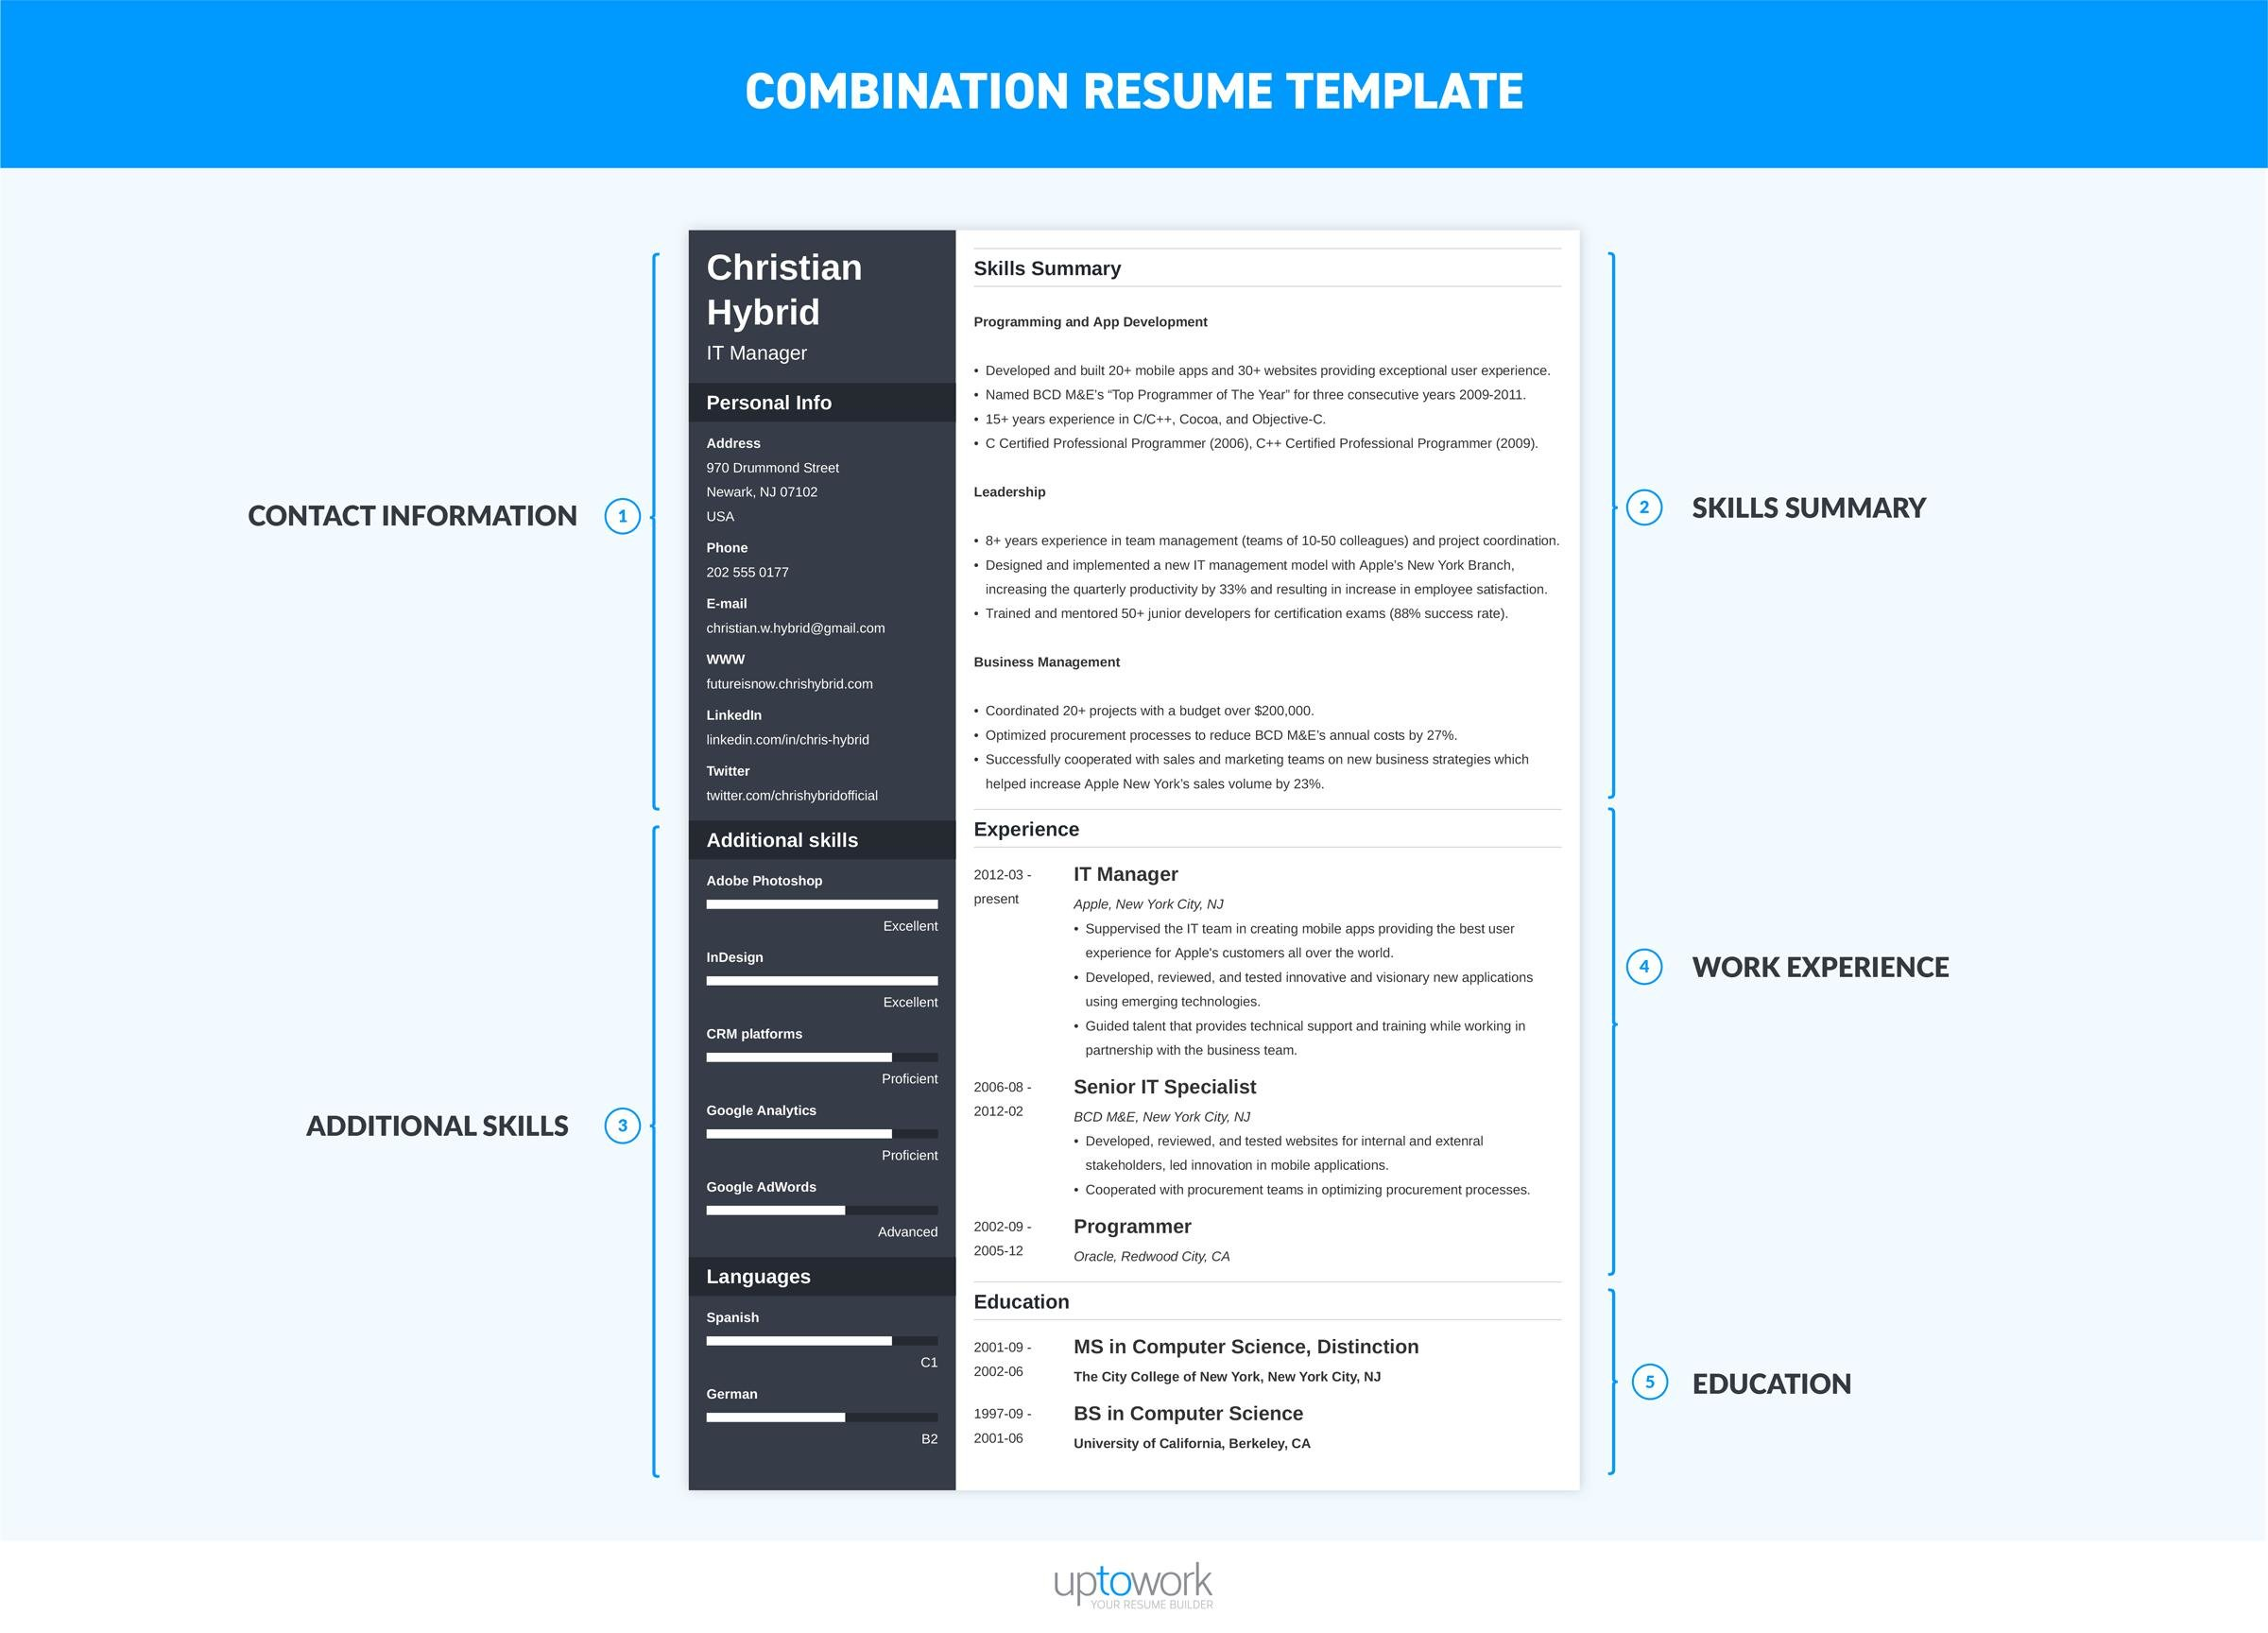 Resume Blank Format Resume Format Samples And Templates For All Types Of Resumes 10